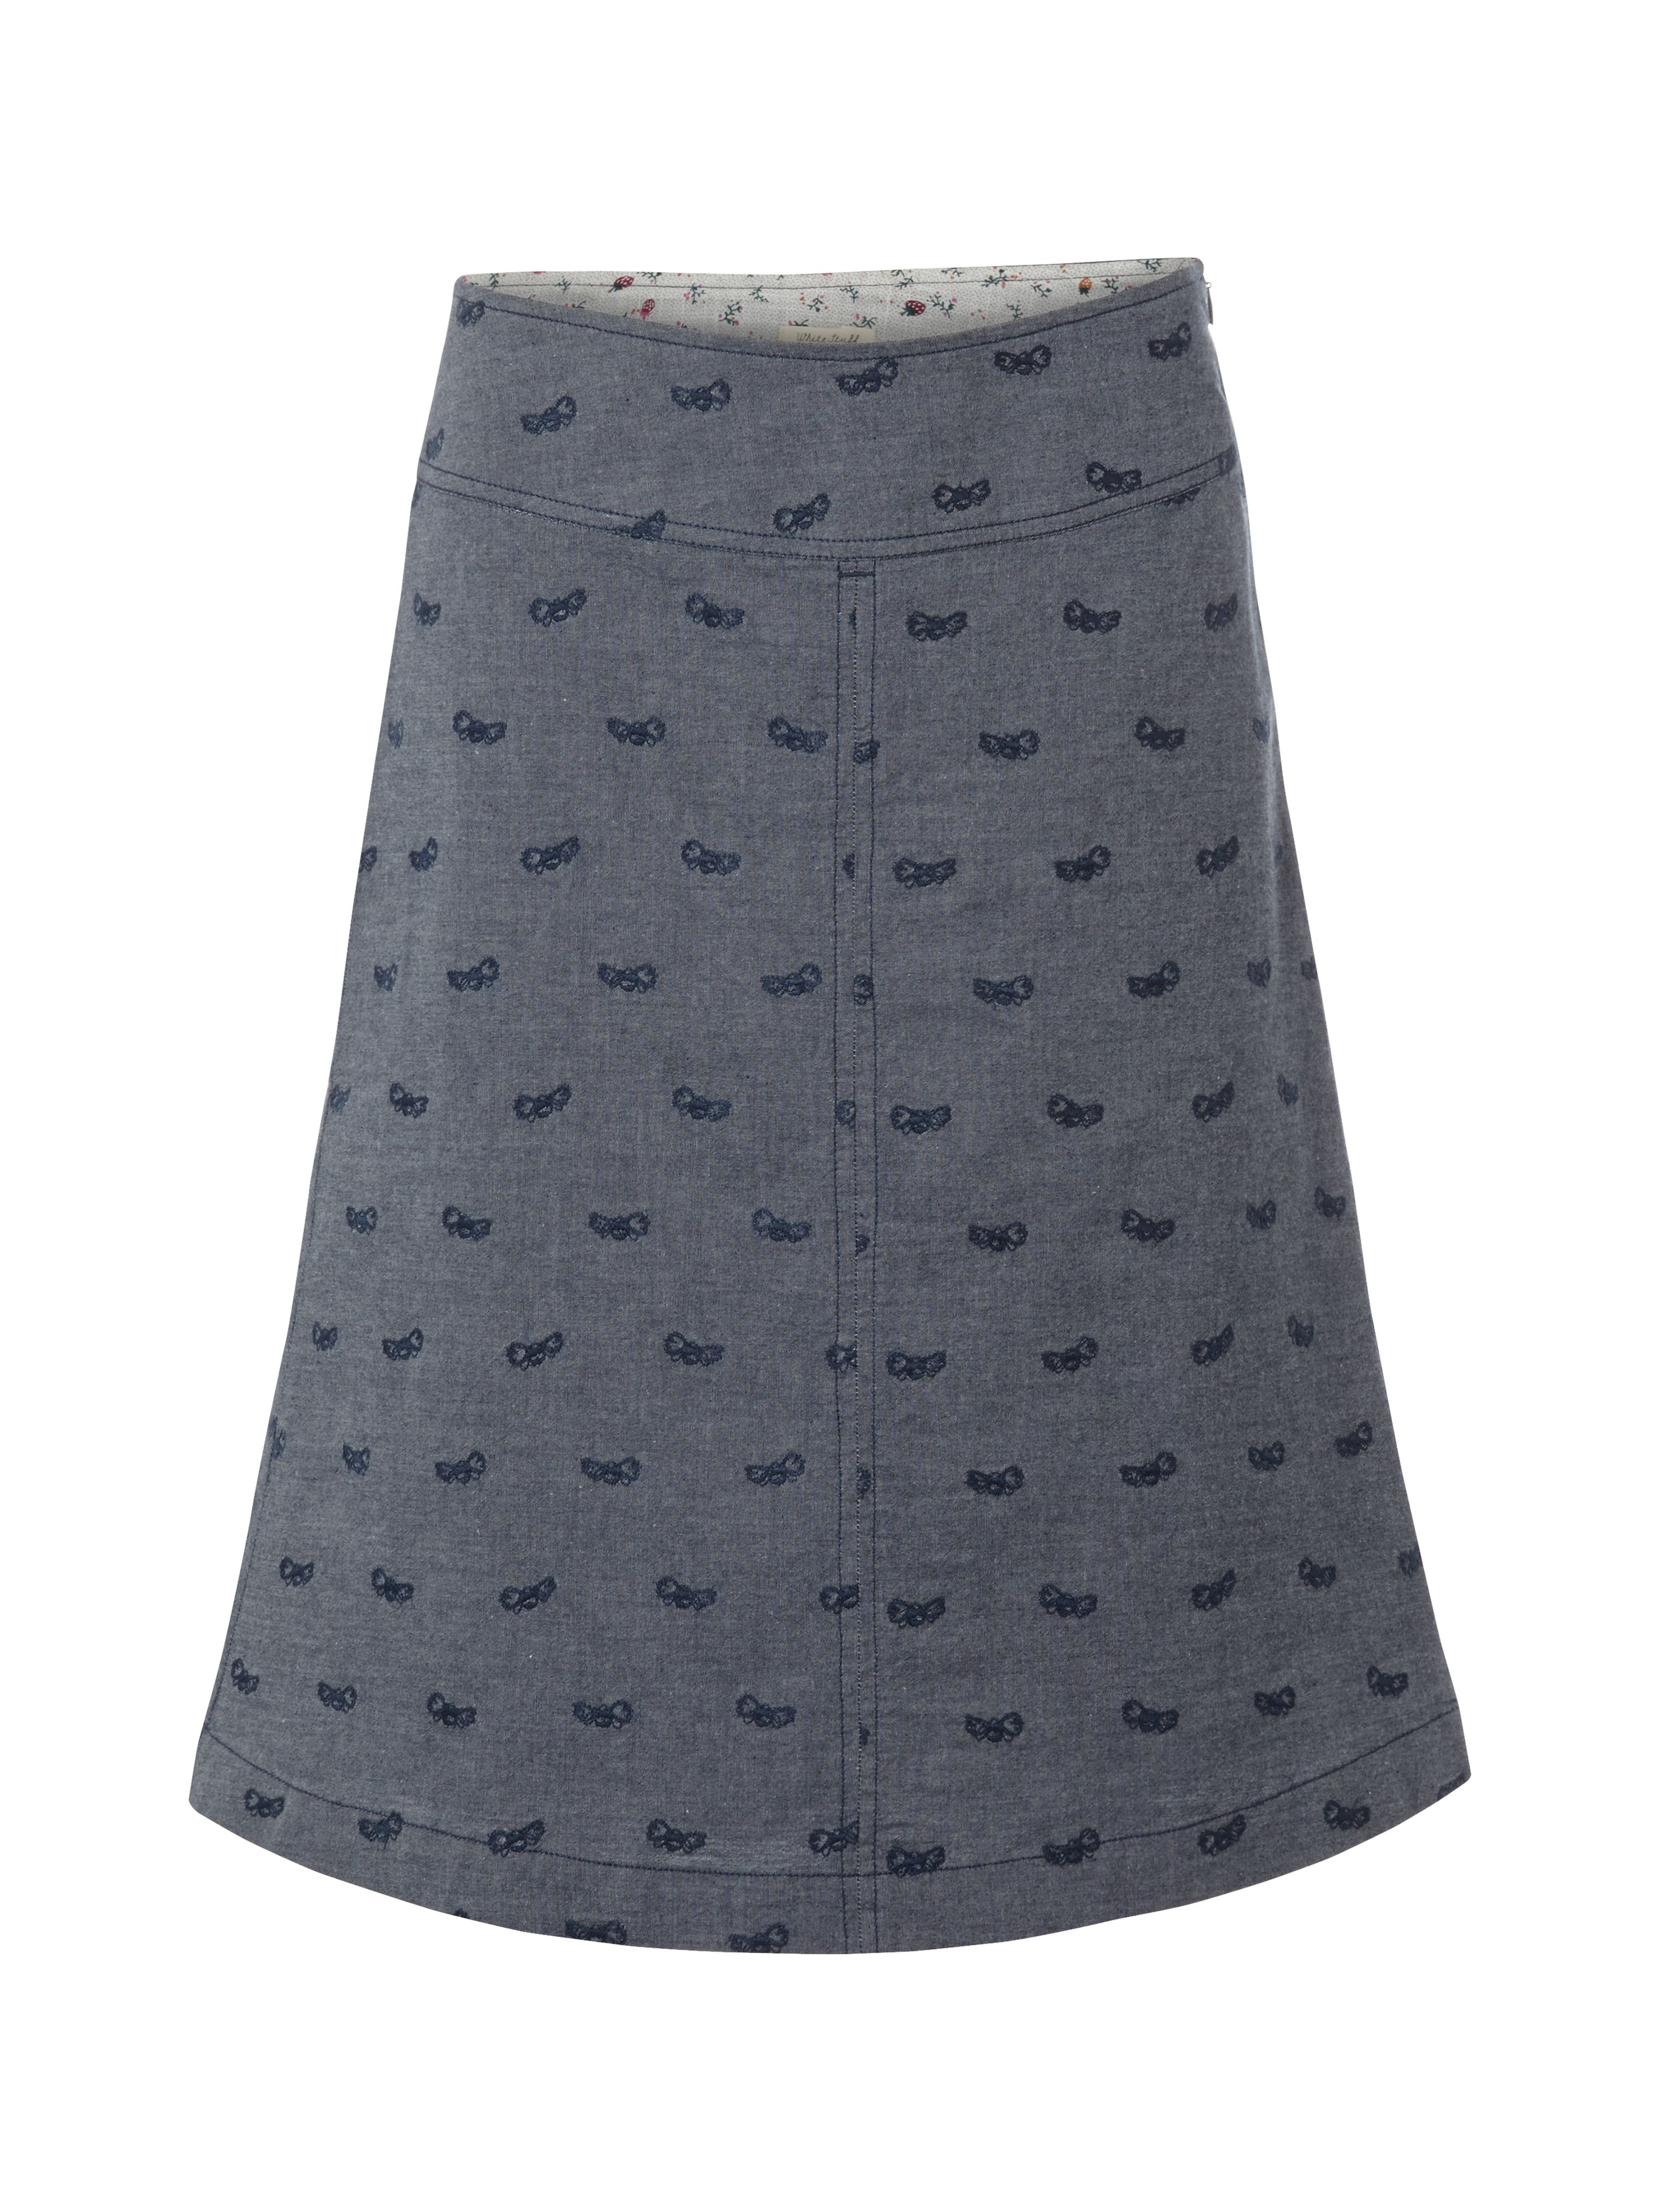 Paraball bee skirt